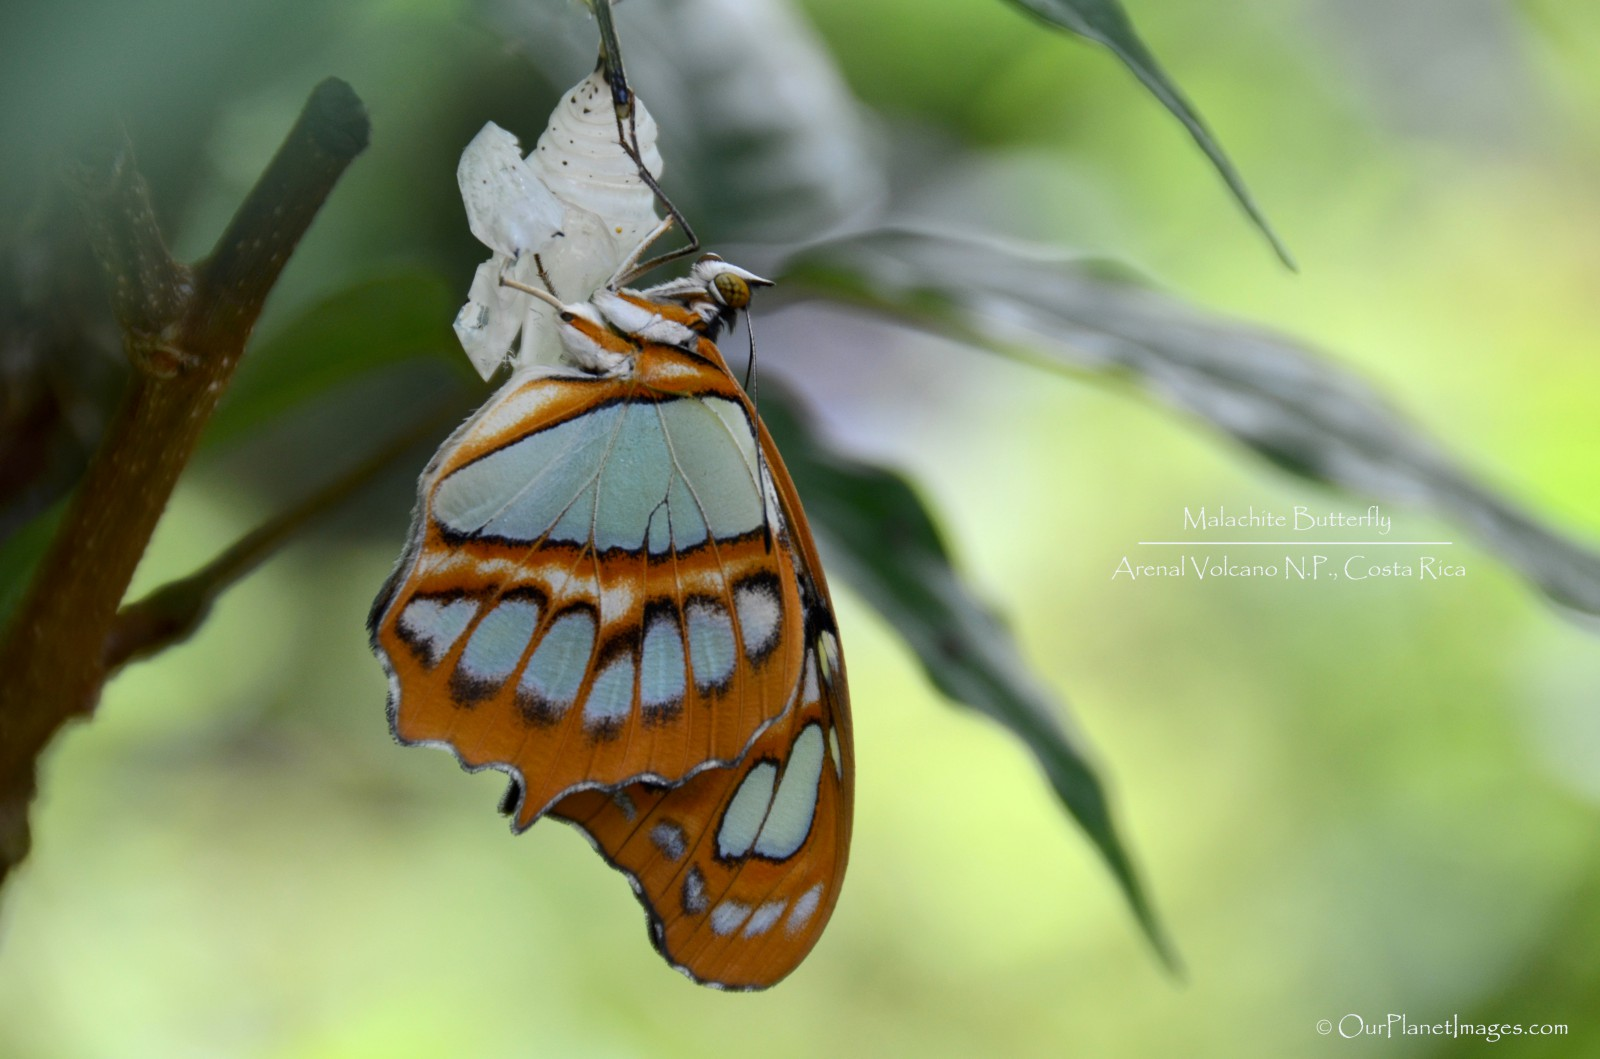 Malachite Butterfly hatching from cocoon